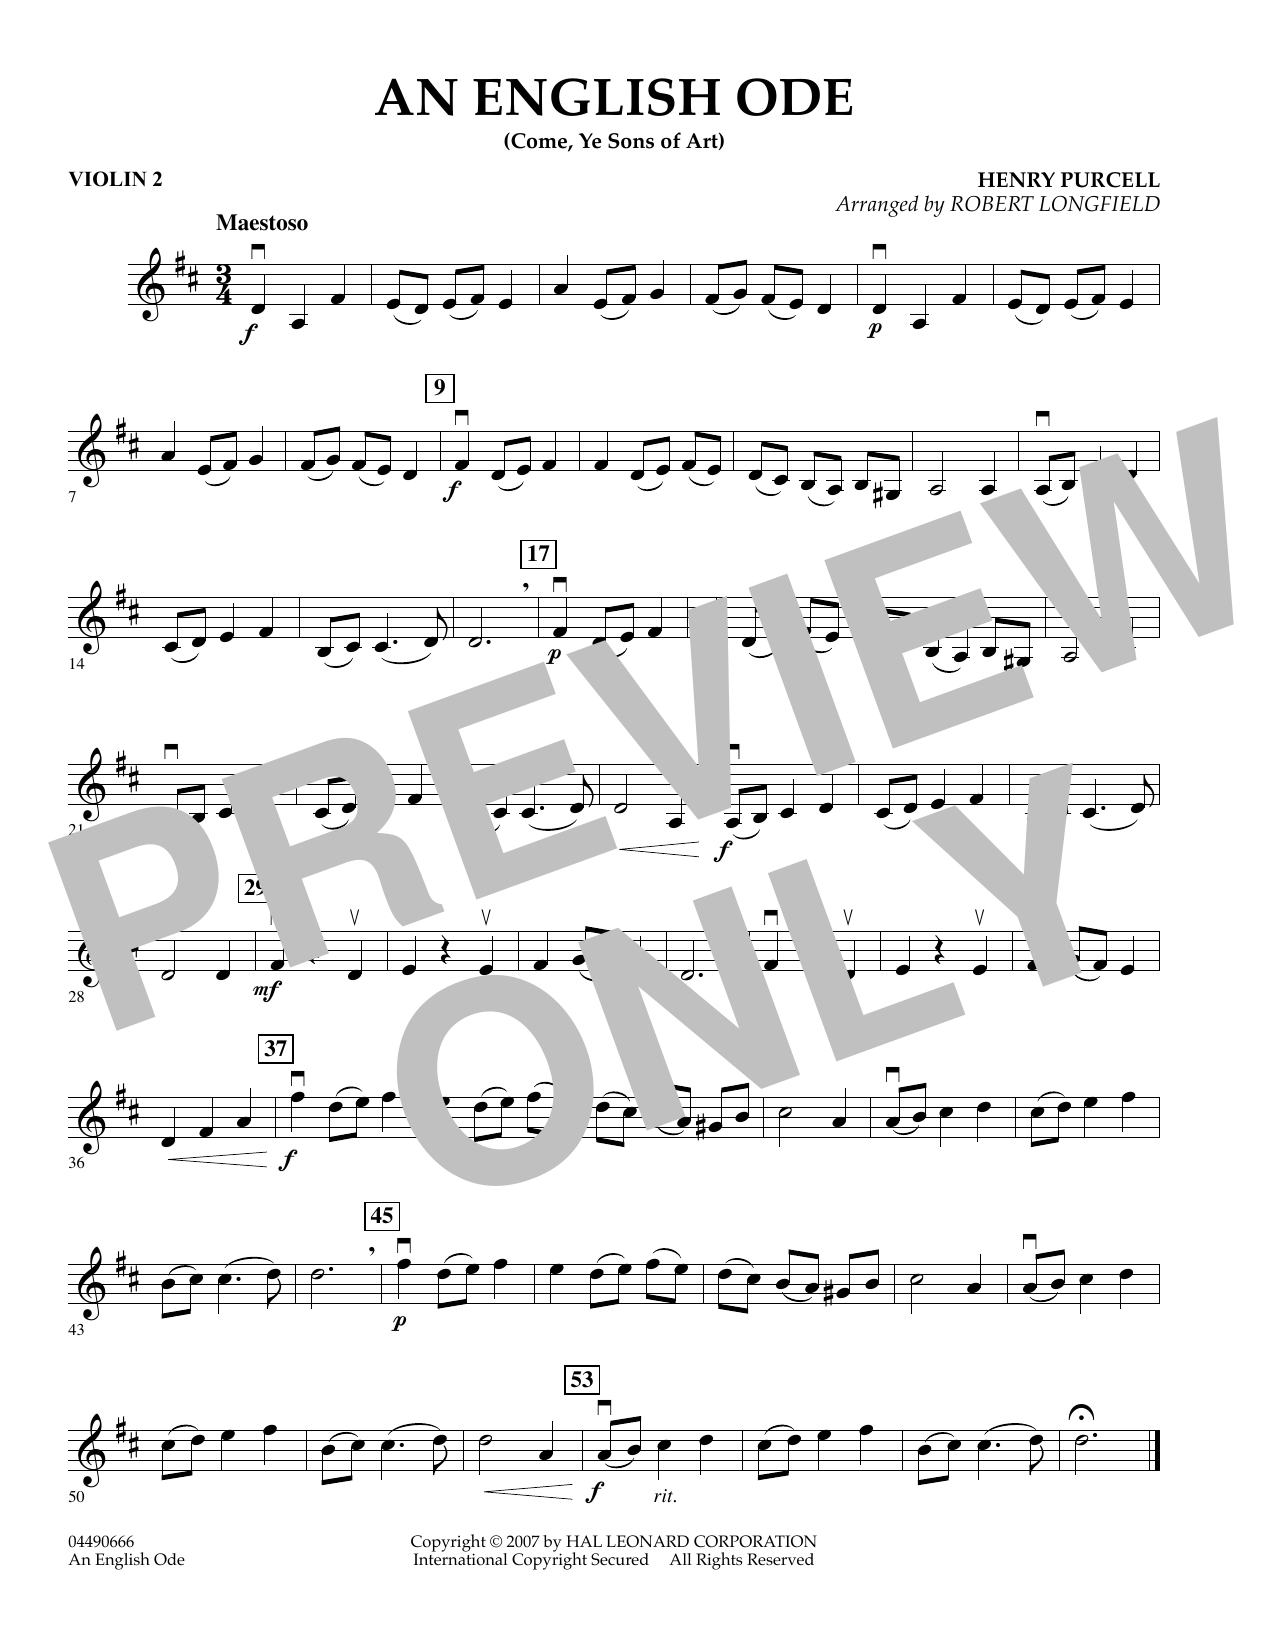 An English Ode (Come, Ye Sons of Art) - Violin 2 (Orchestra)